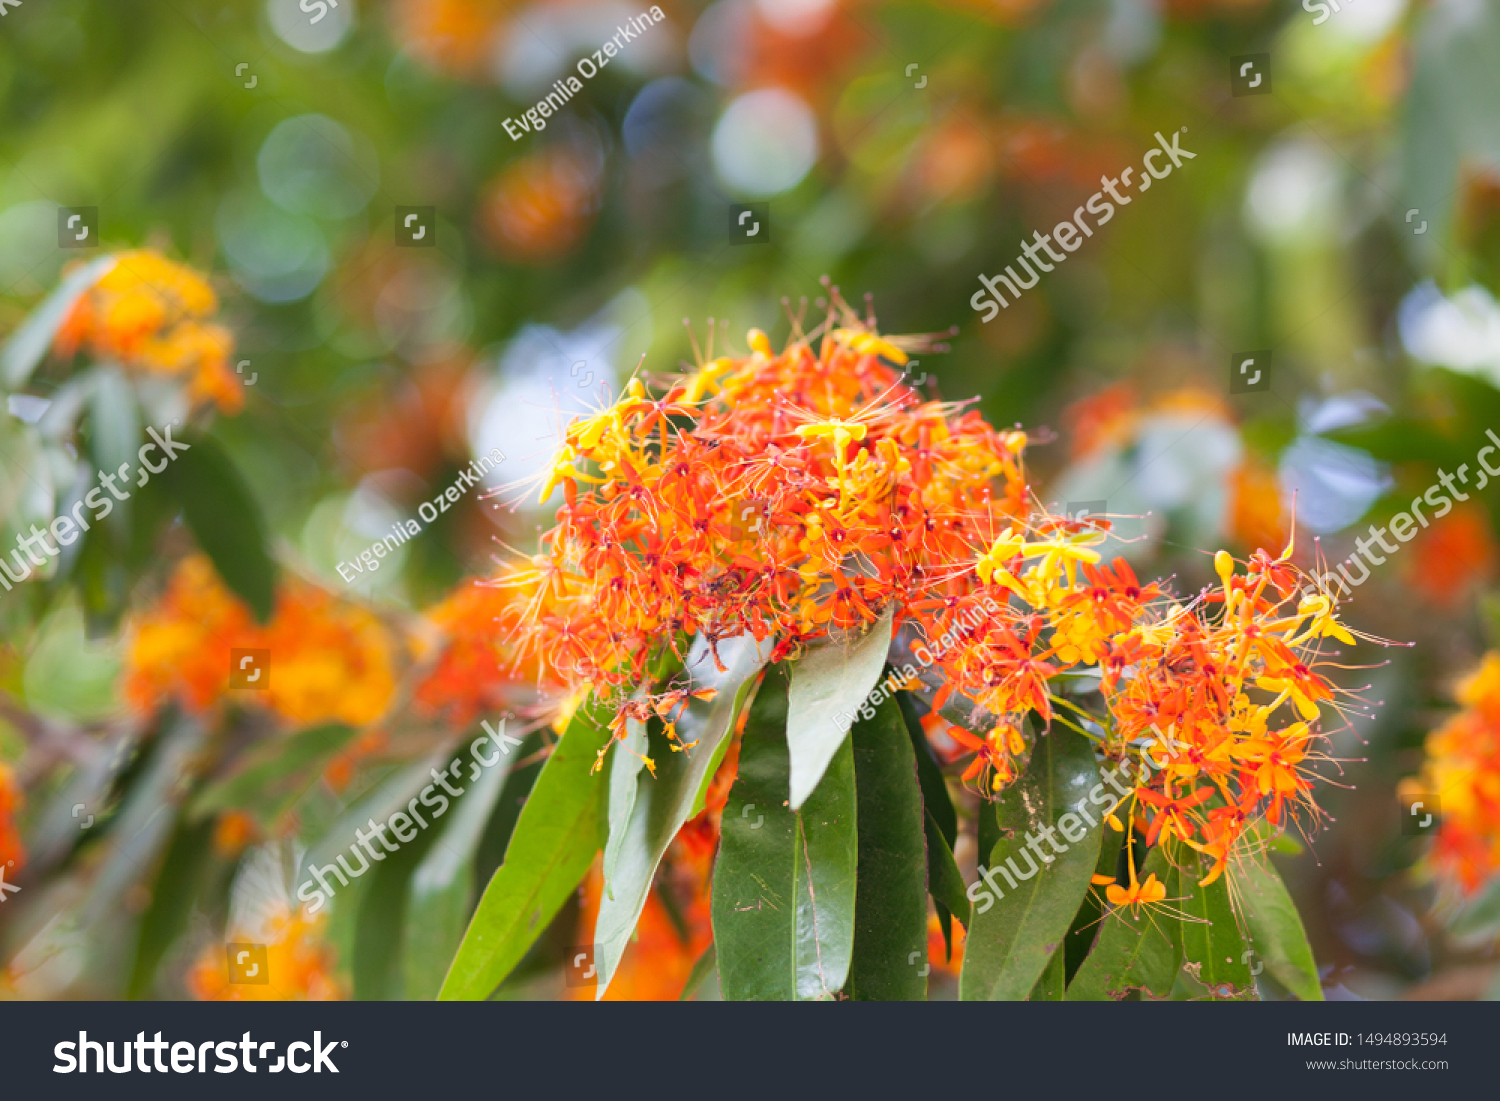 https://image.shutterstock.com/z/stock-photo-flam-boyant-the-flame-tree-royal-poinciana-blooming-in-spring-in-thailand-close-up-macro-1494893594.jpg